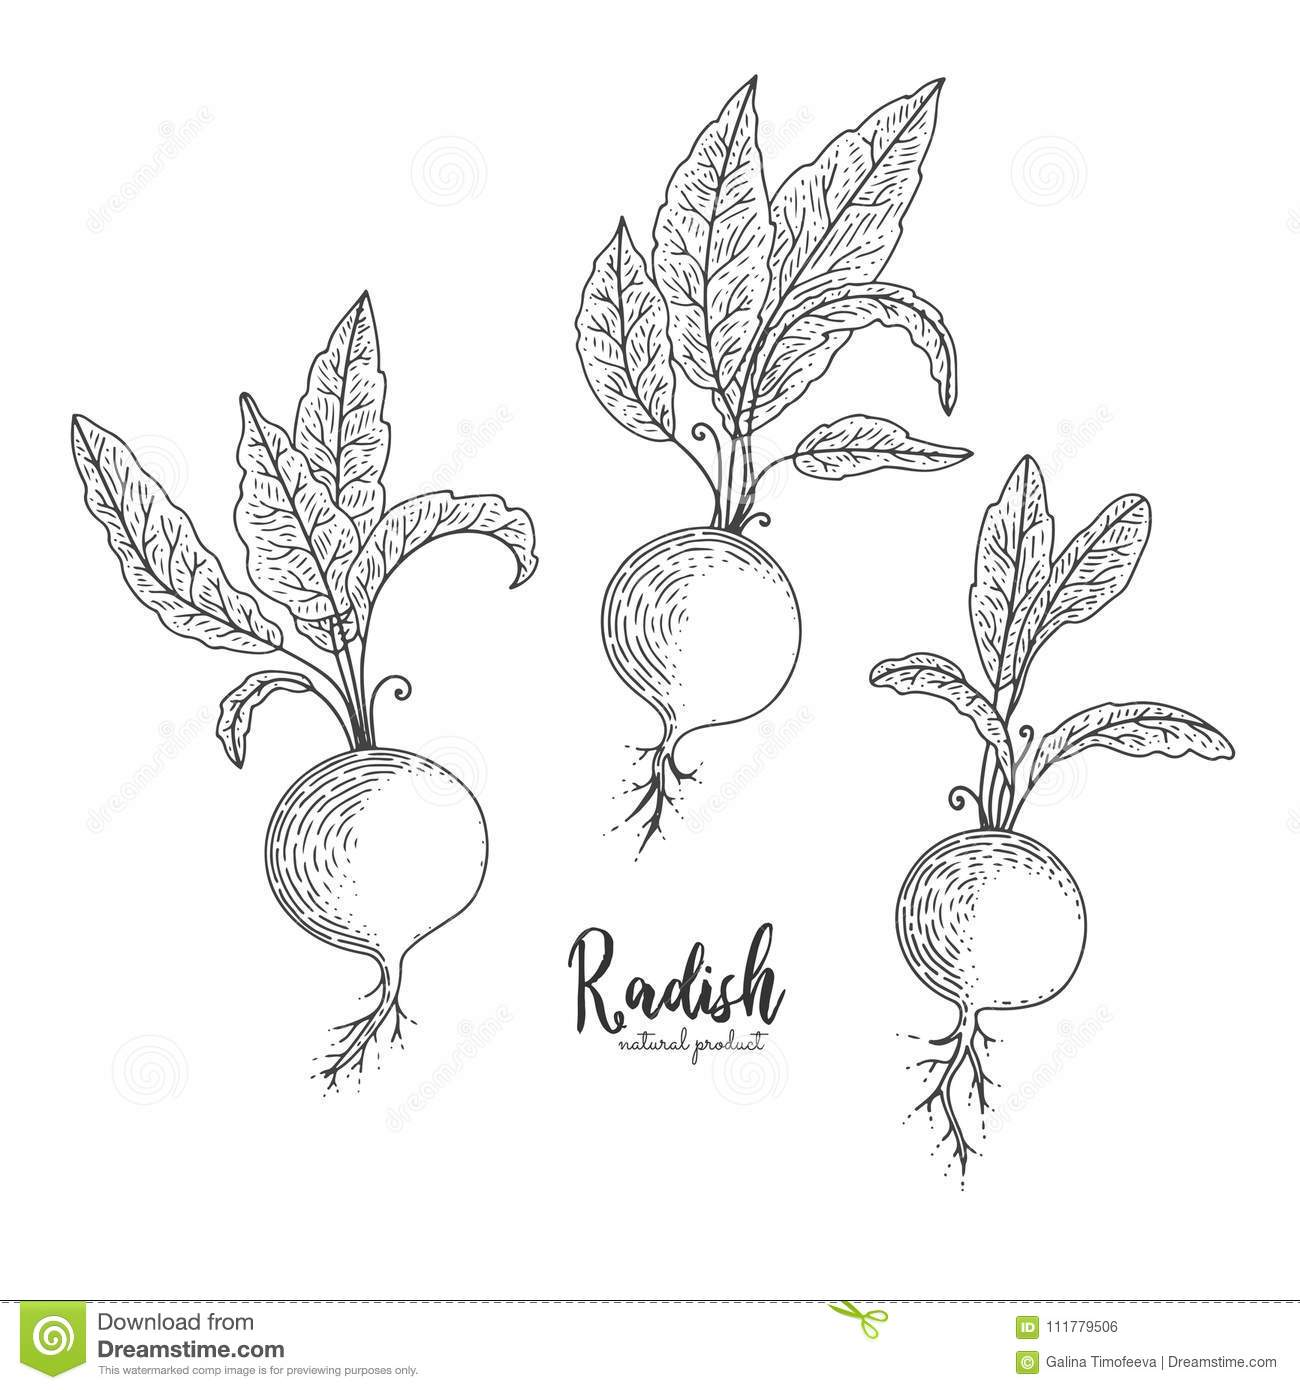 Radish hand drawn vector illustration. Isolated vegetable engraved style object. Detailed vegetarian food drawing. Farm